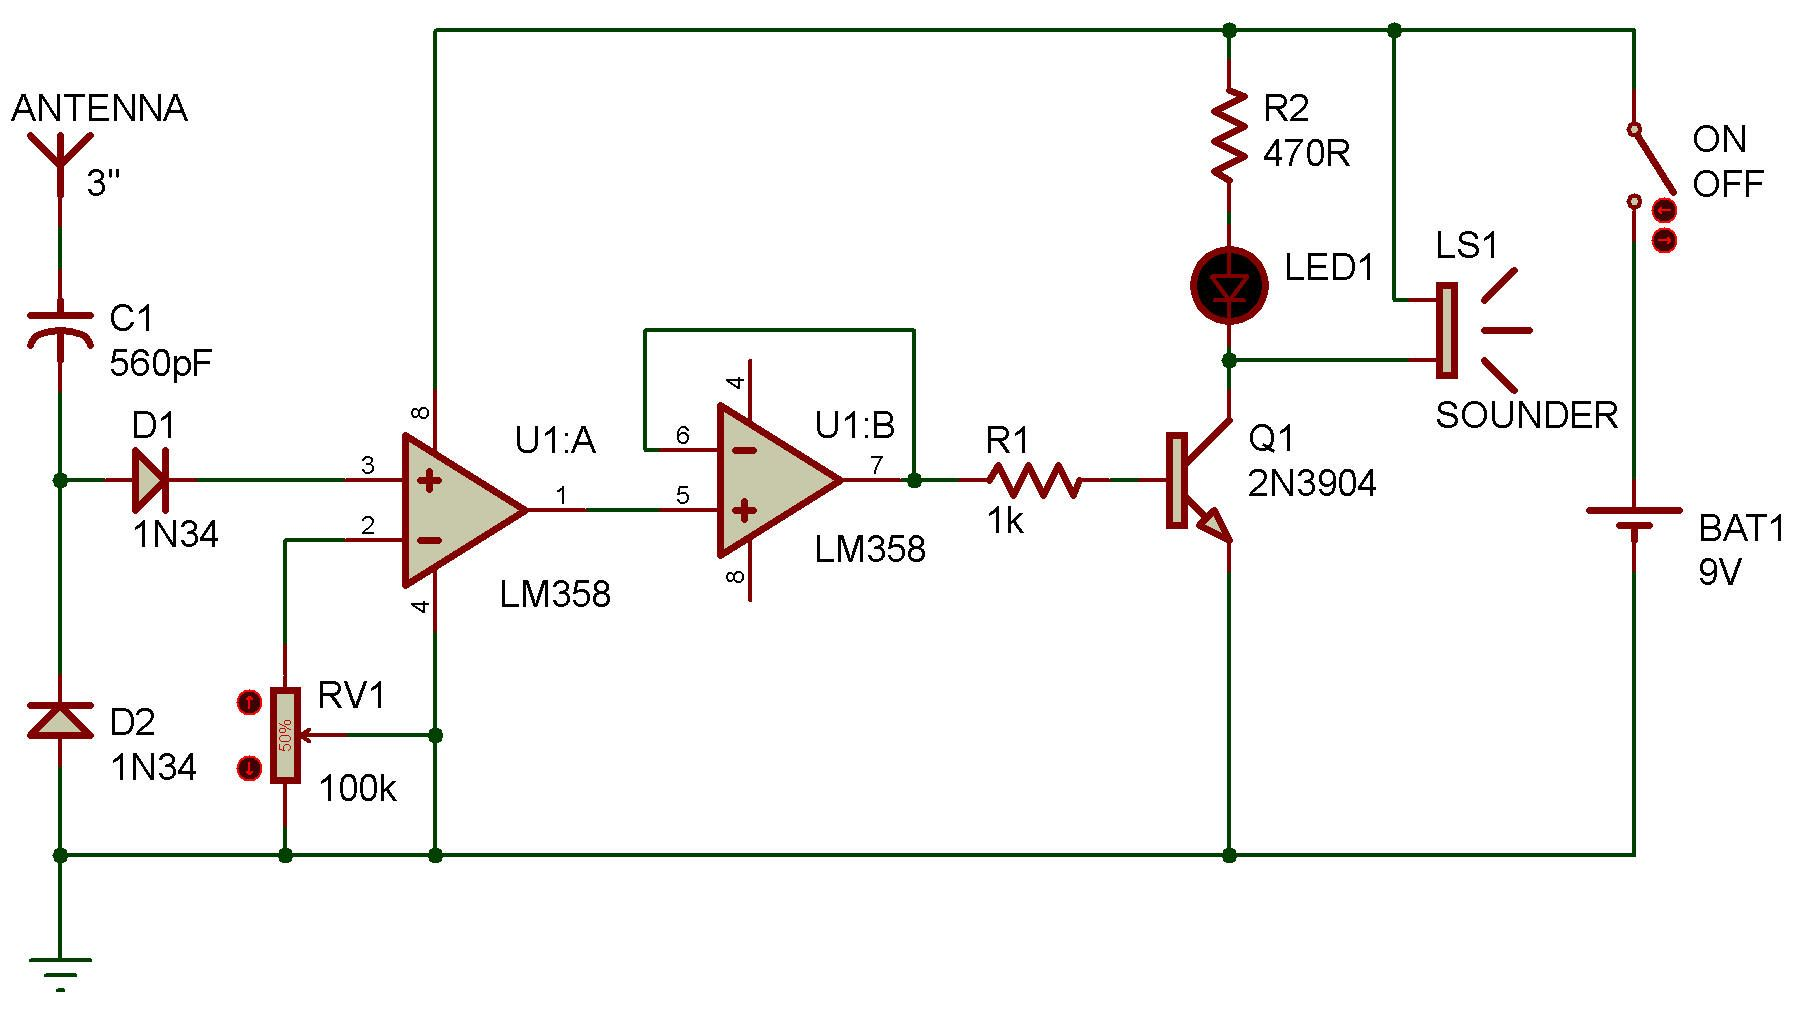 Http Www Zpag Net Electroniques Radio2 Long Range Cell Phone Detector Lm358 Html Electronic Circuit Projects Electronic Kits Electronic Engineering